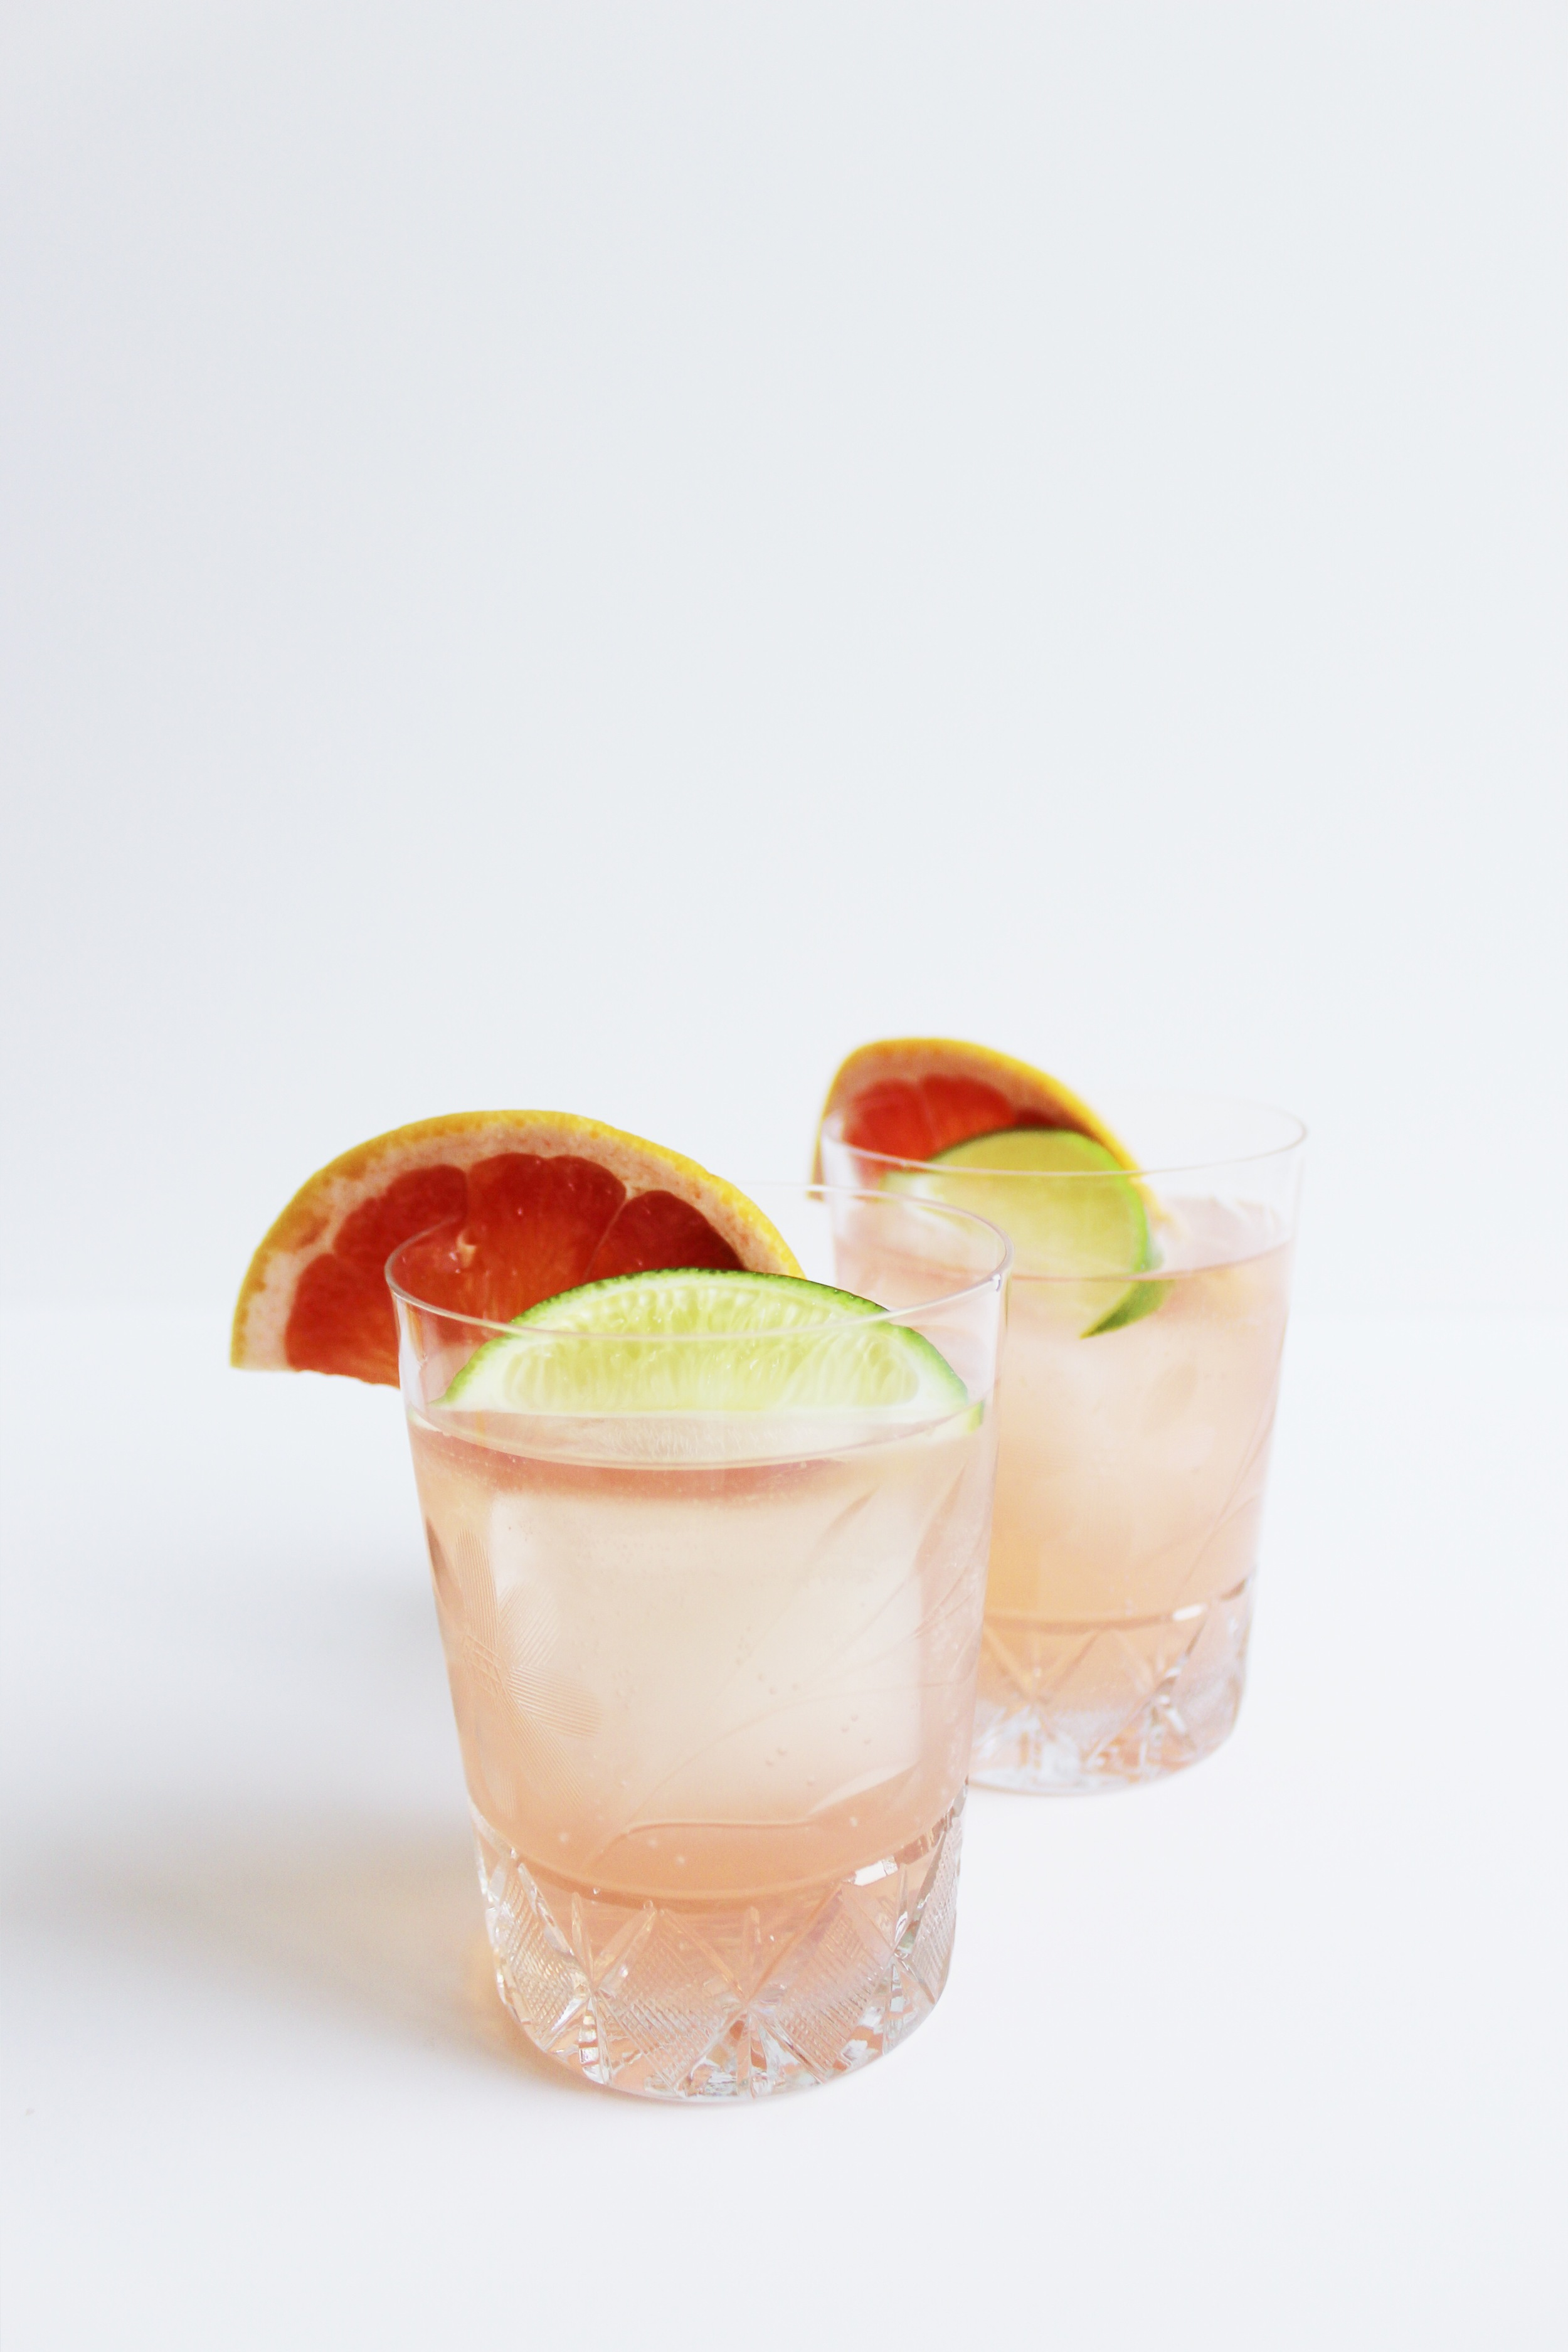 Celebrate Cinco de Mayo with a 2-Ingredient Paloma - Just Grapefruit Soda and Tequila | Sundays and Somedays